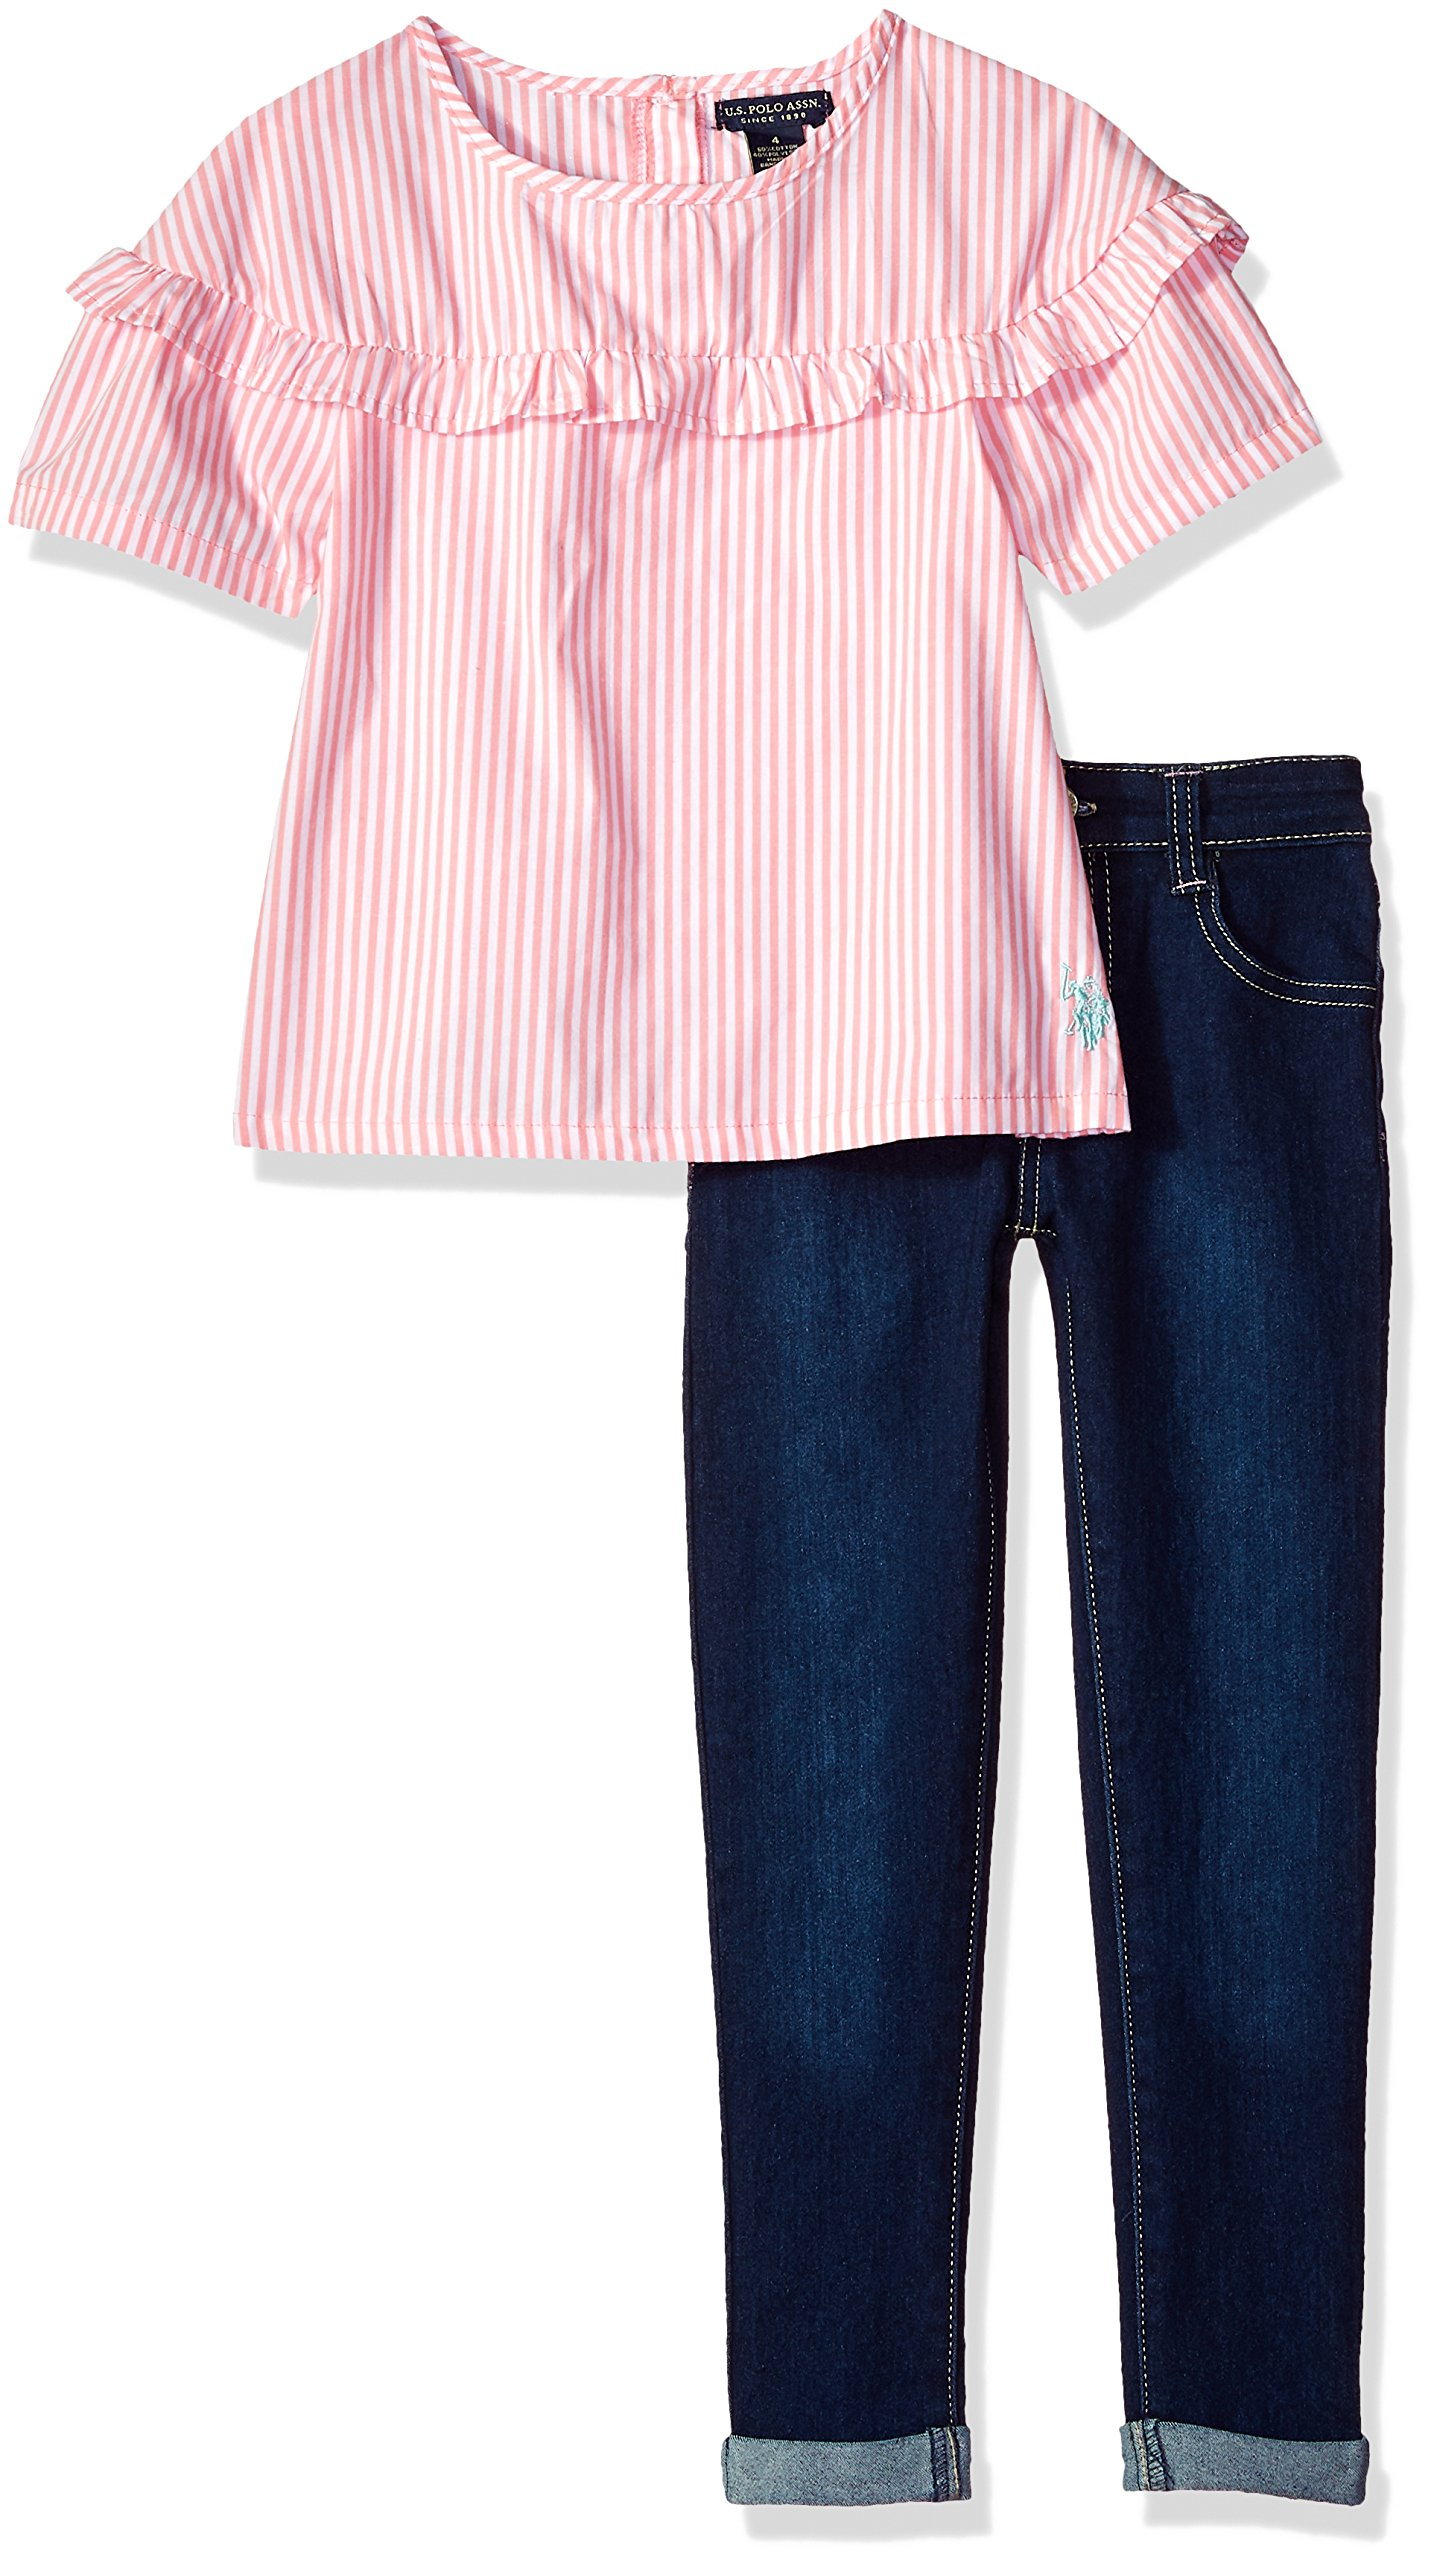 U.S. Polo Assn. Toddler Girls' Fashion Top and Pant Set, Ruffle Chest Bell Sleeve Top Roll Cuff Pant Conch Shell, 2T